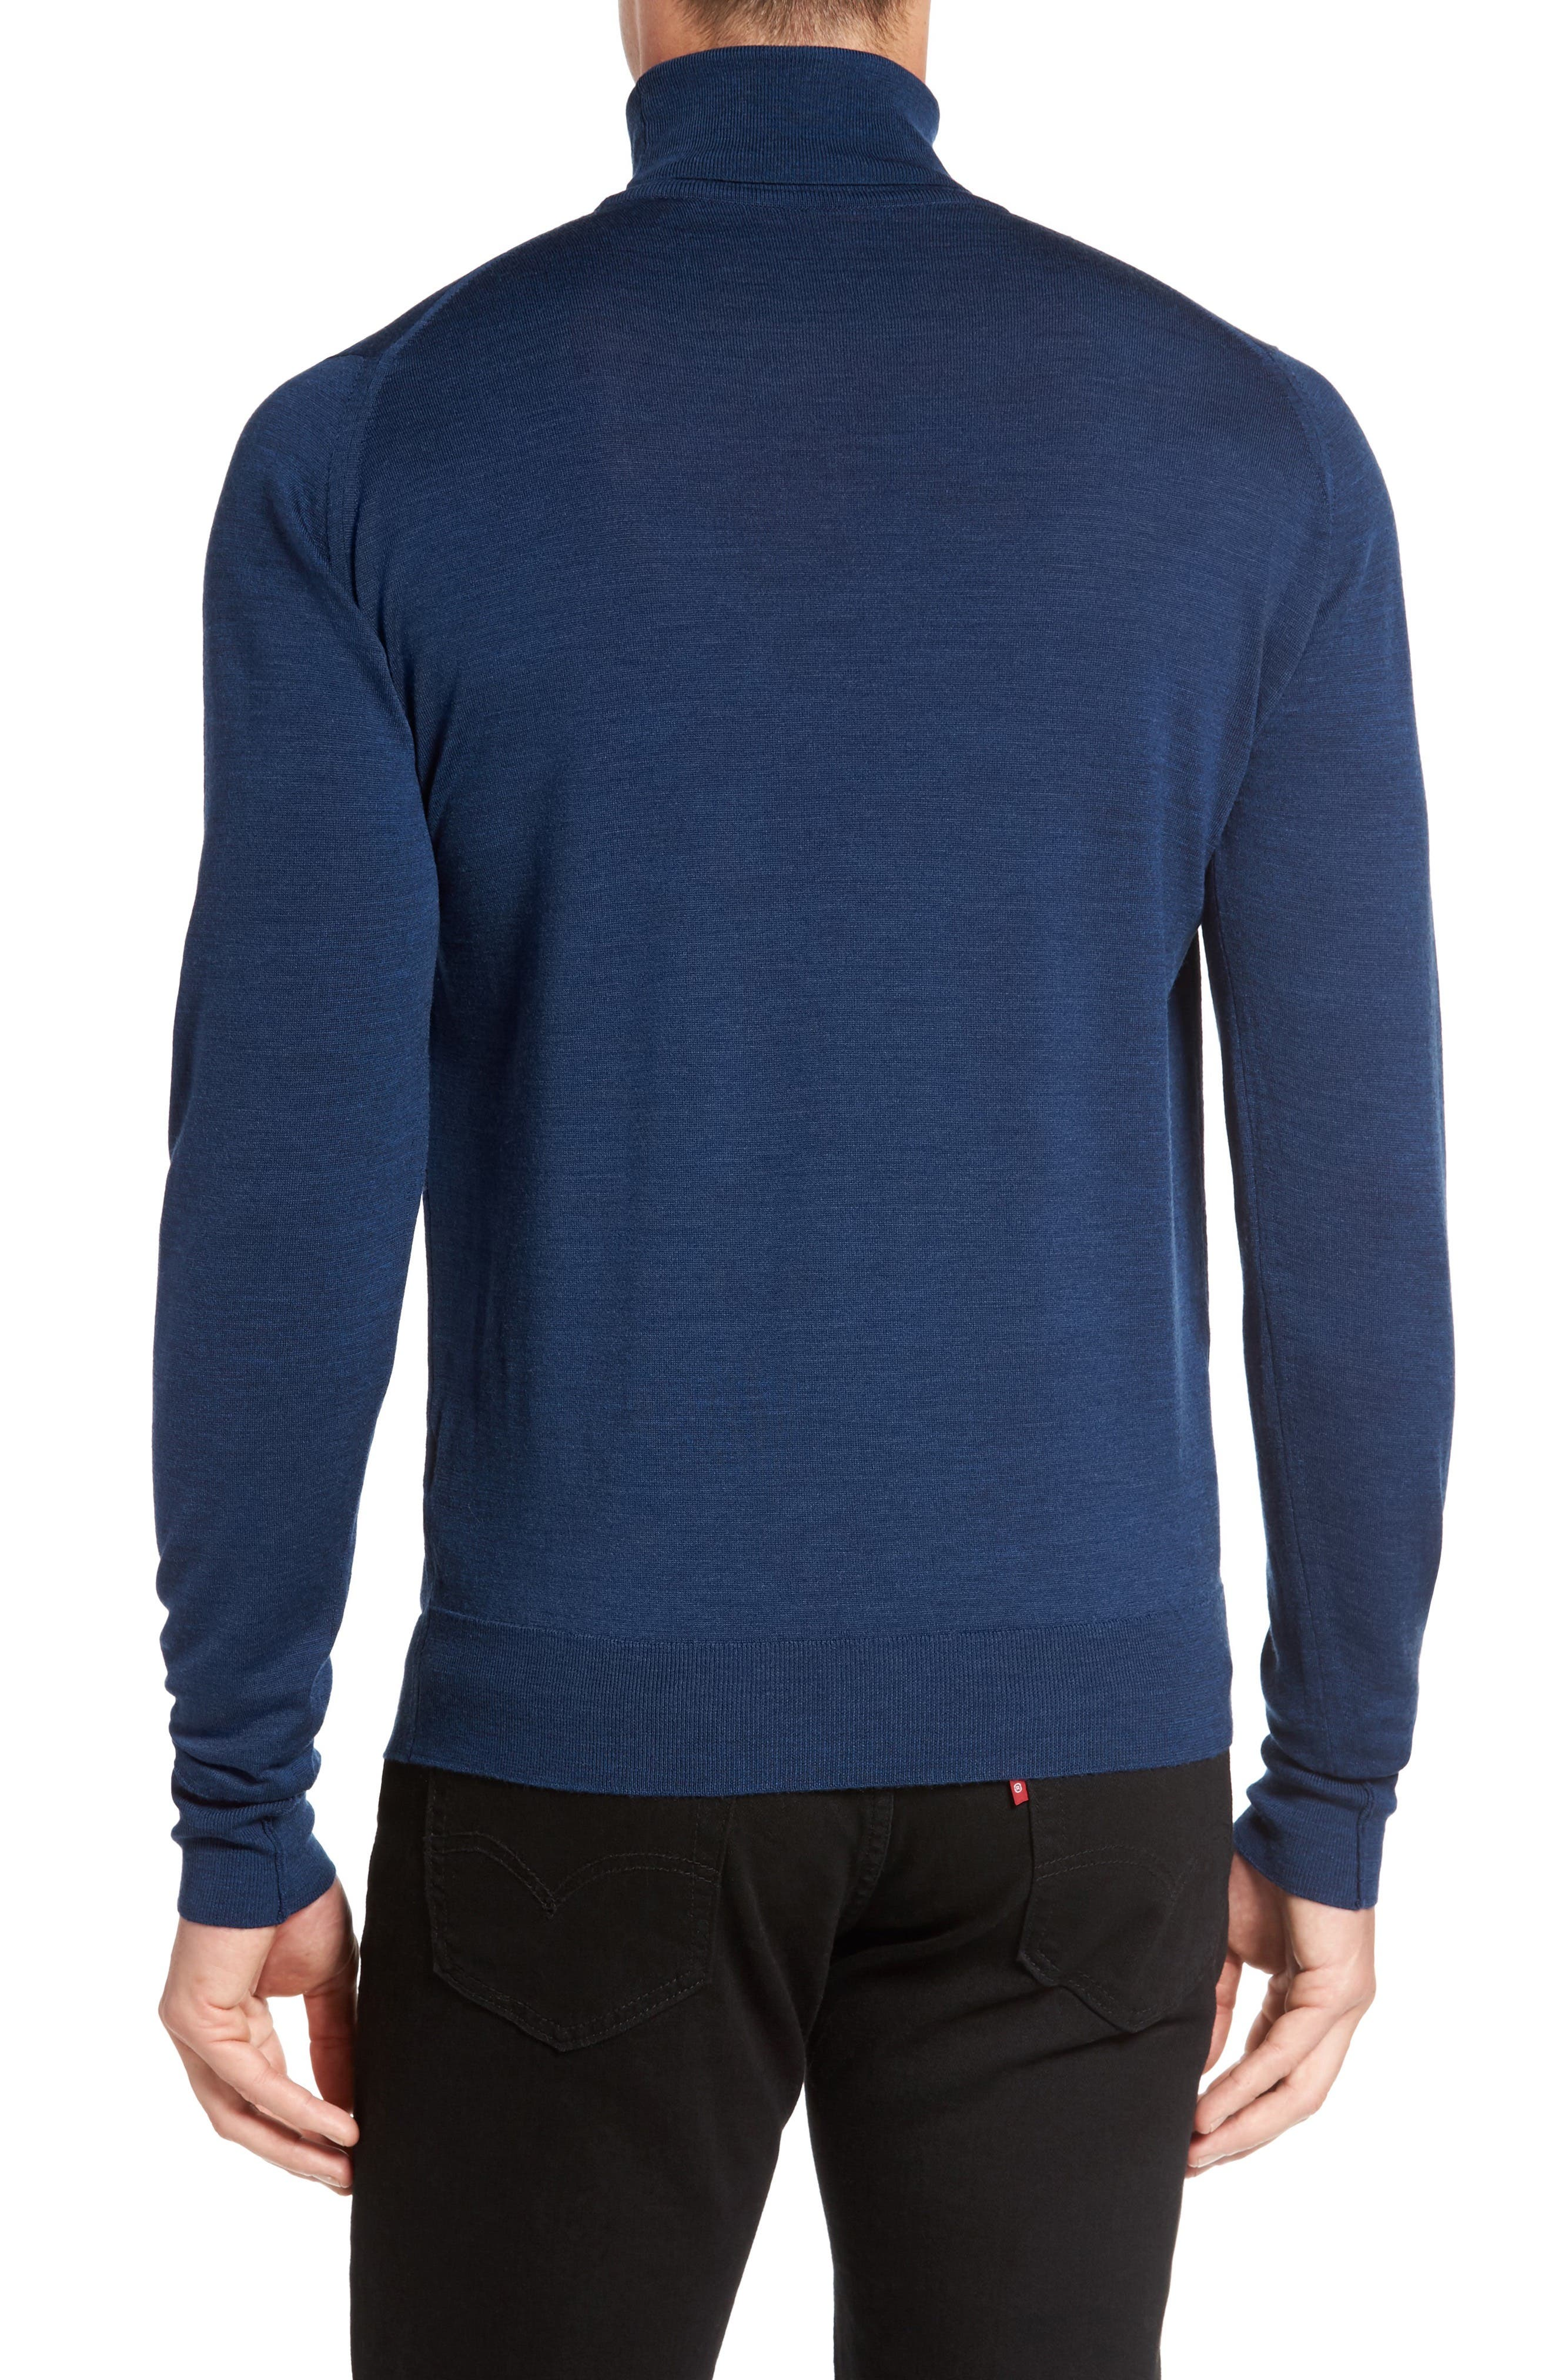 'Richards' Easy Fit Turtleneck Wool Sweater,                             Alternate thumbnail 24, color,